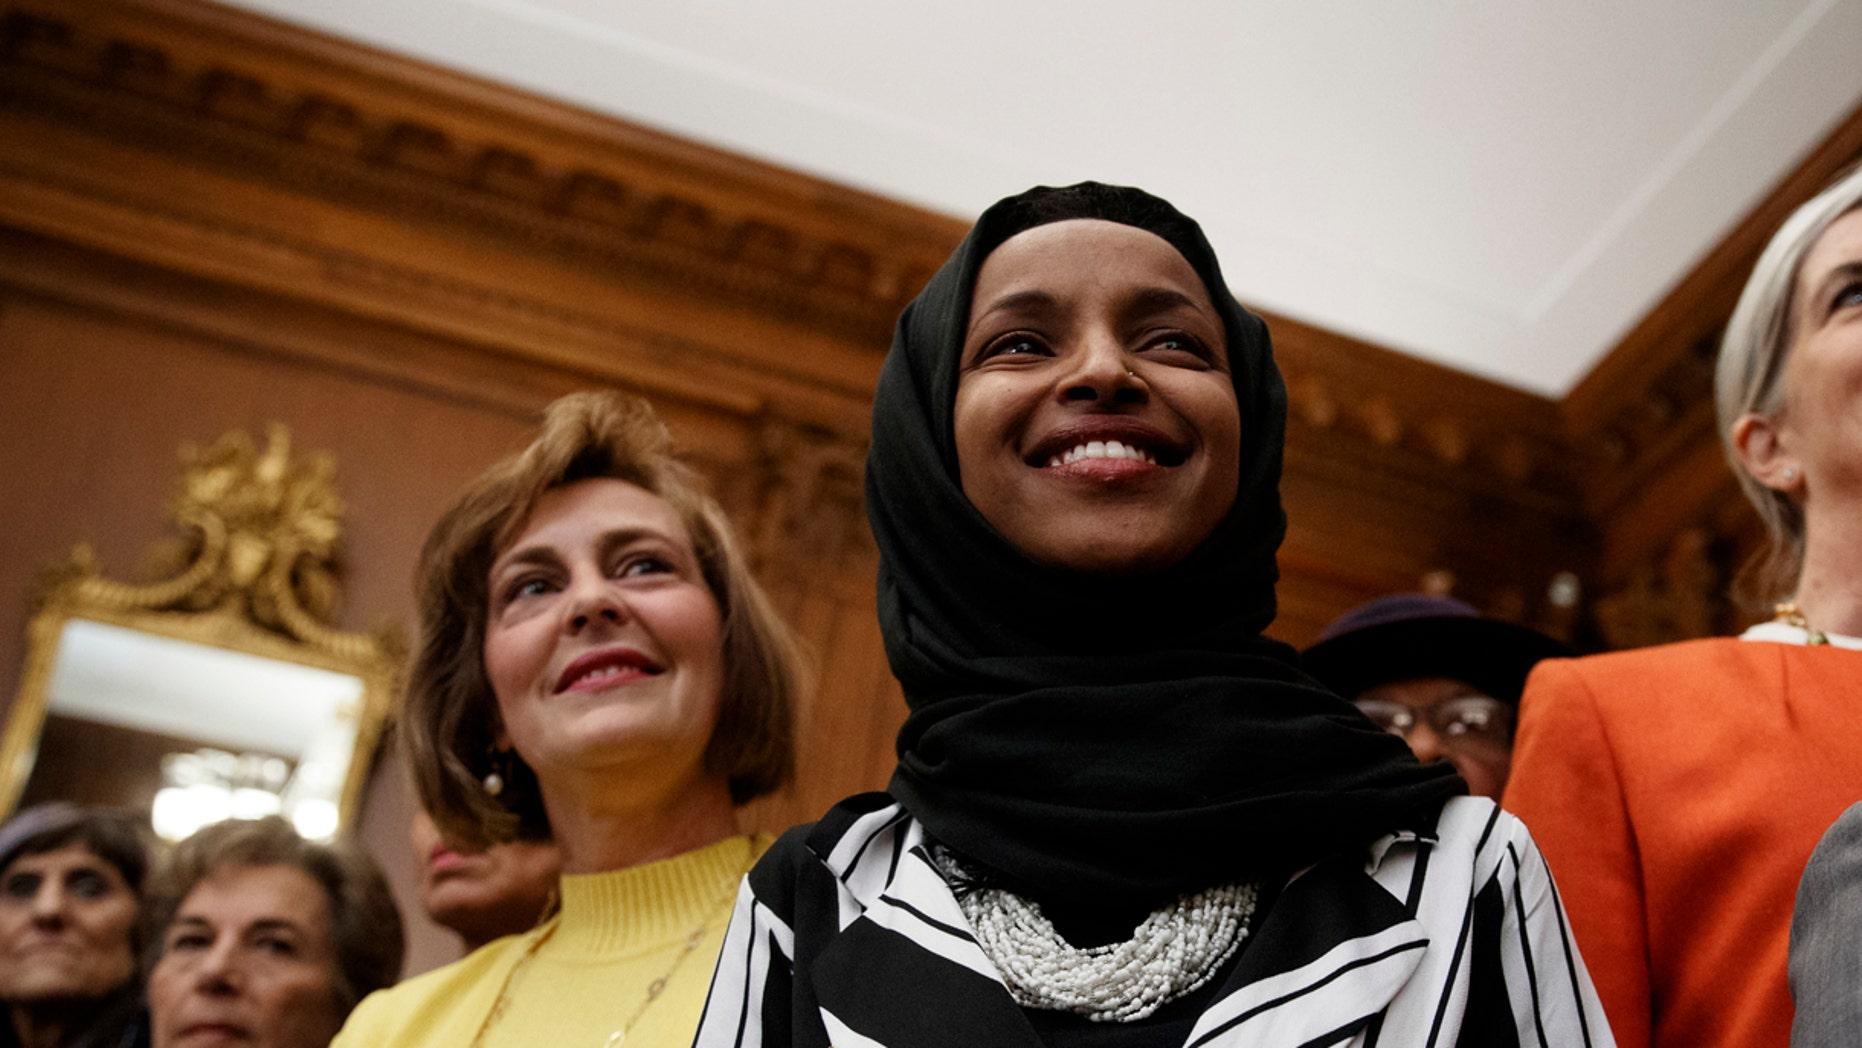 Rep. Ilhan Omar, D-Minn., center, joins other Democrats during a news conference on Capitol Hill in Washington, Friday, Jan. 4, 2019, about the introduction of H.R. 1 - For the People Act. (AP Photo/Carolyn Kaster)